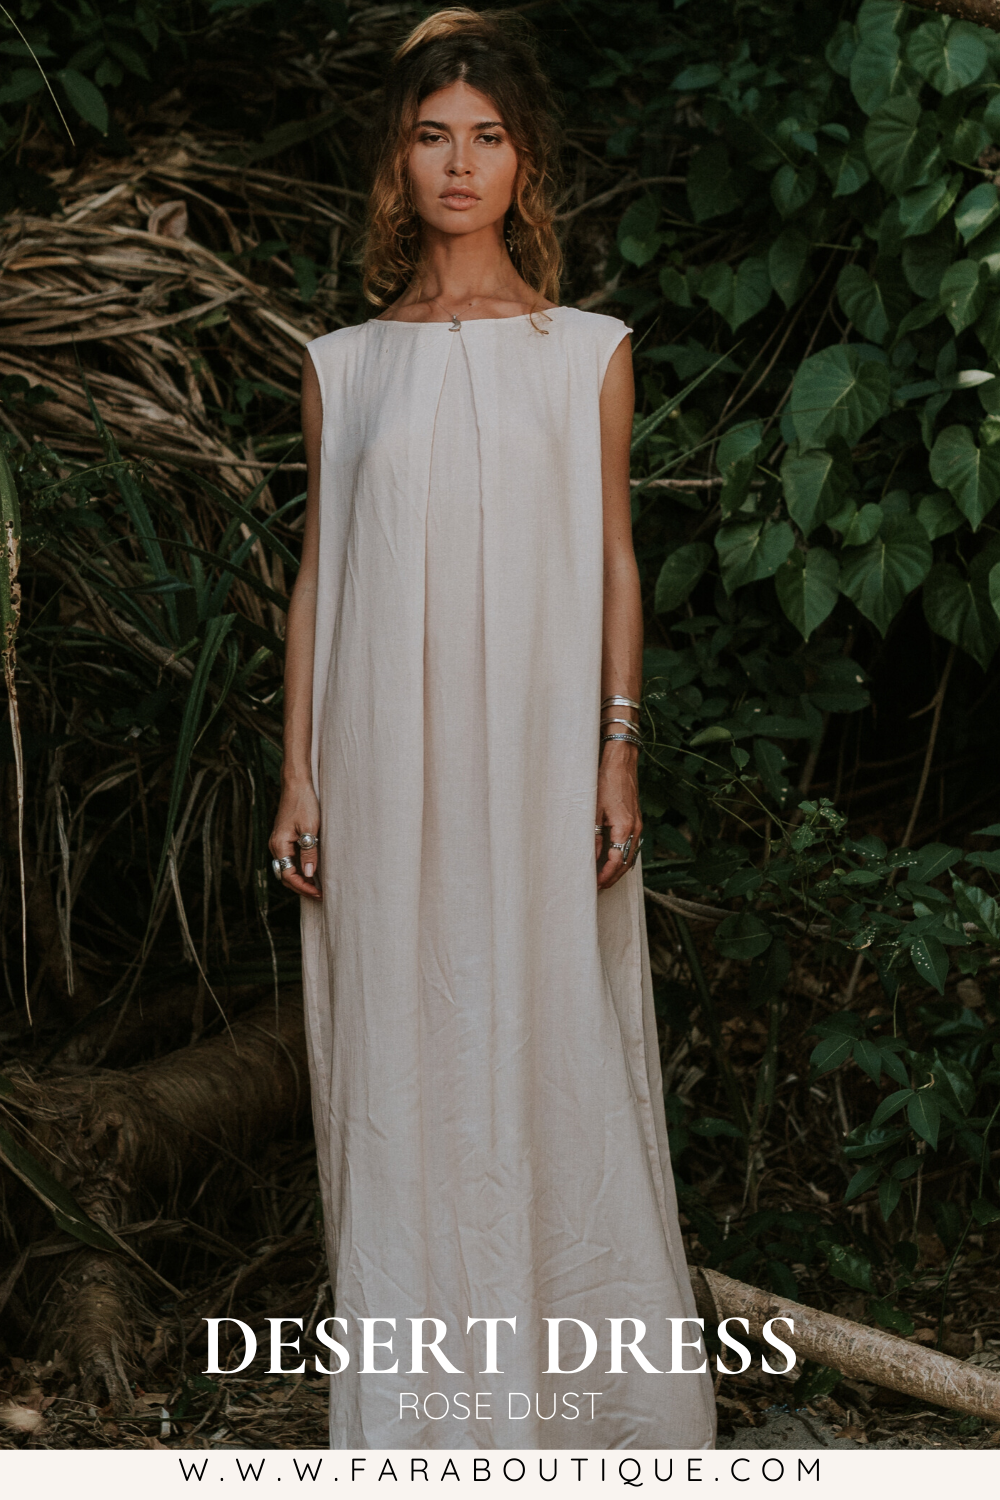 DESERT MAXI DRESS | rose dust hemp | boho beach vibes | www.faraboutique.com #bohofashion #bohostyle #faraboutique